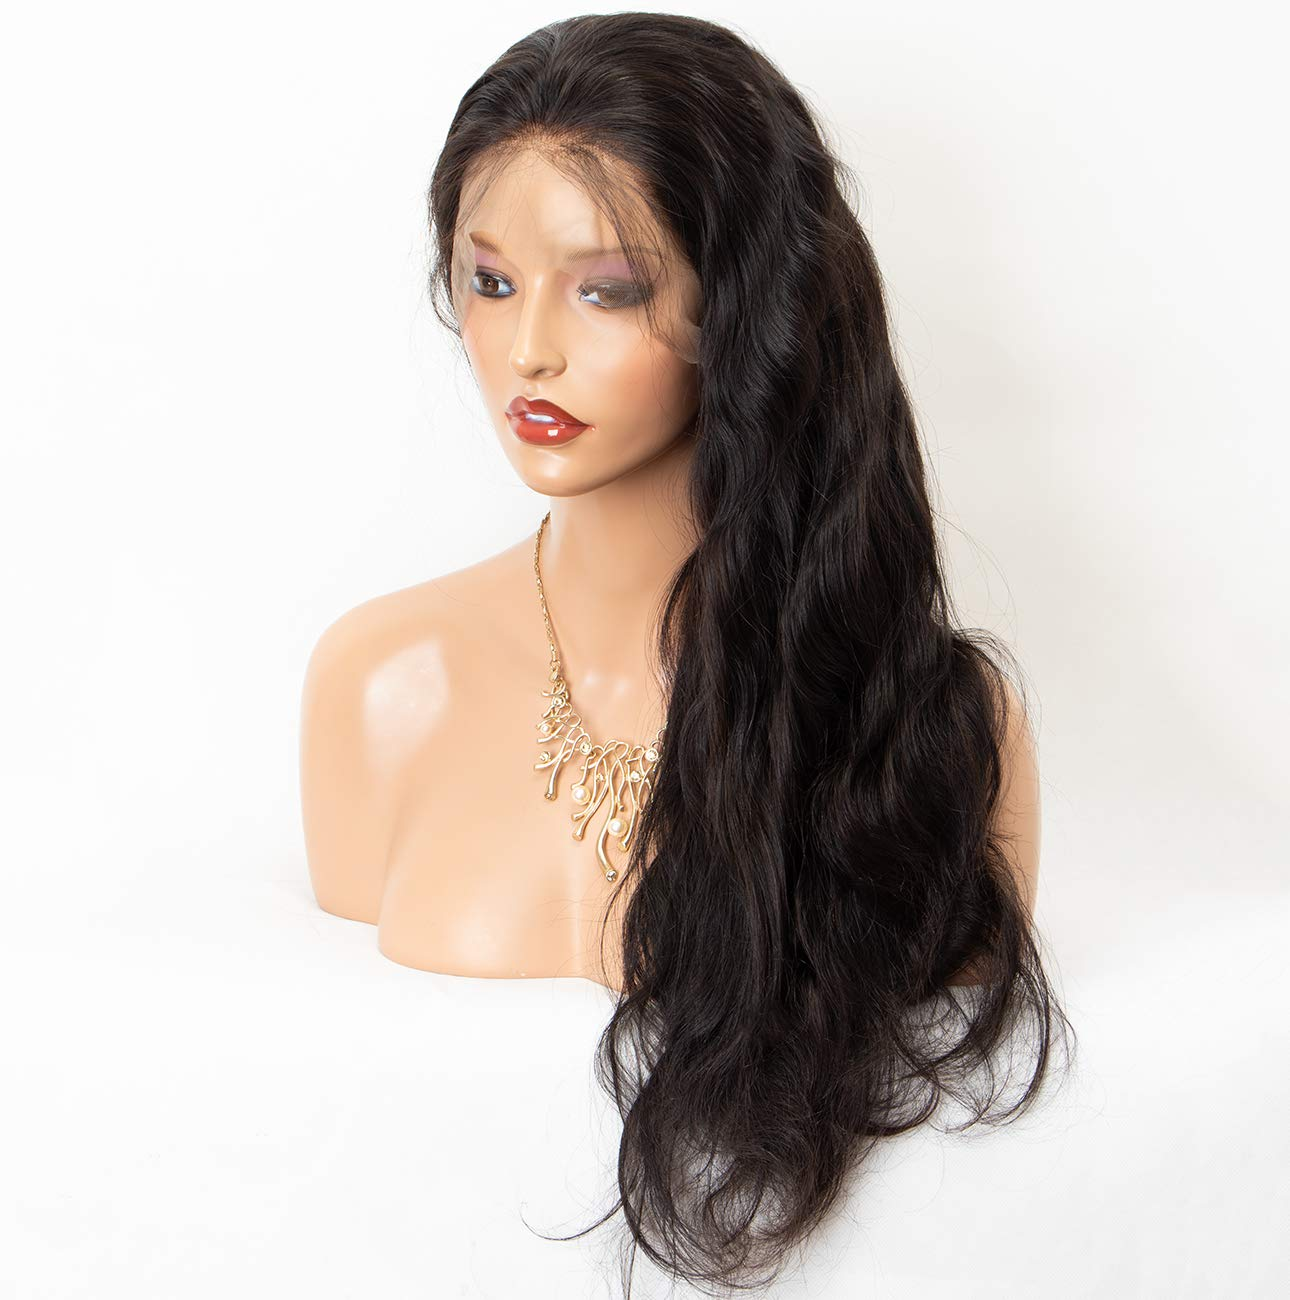 Chantiche Glueless Body Wave 360 Lace Wig with Natural Hairline and High Ponytail Brazilian Virgin 360 Lace Frontal Human Hair Wigs for Women 150% Extra Heavy Density 18inches Natural Color